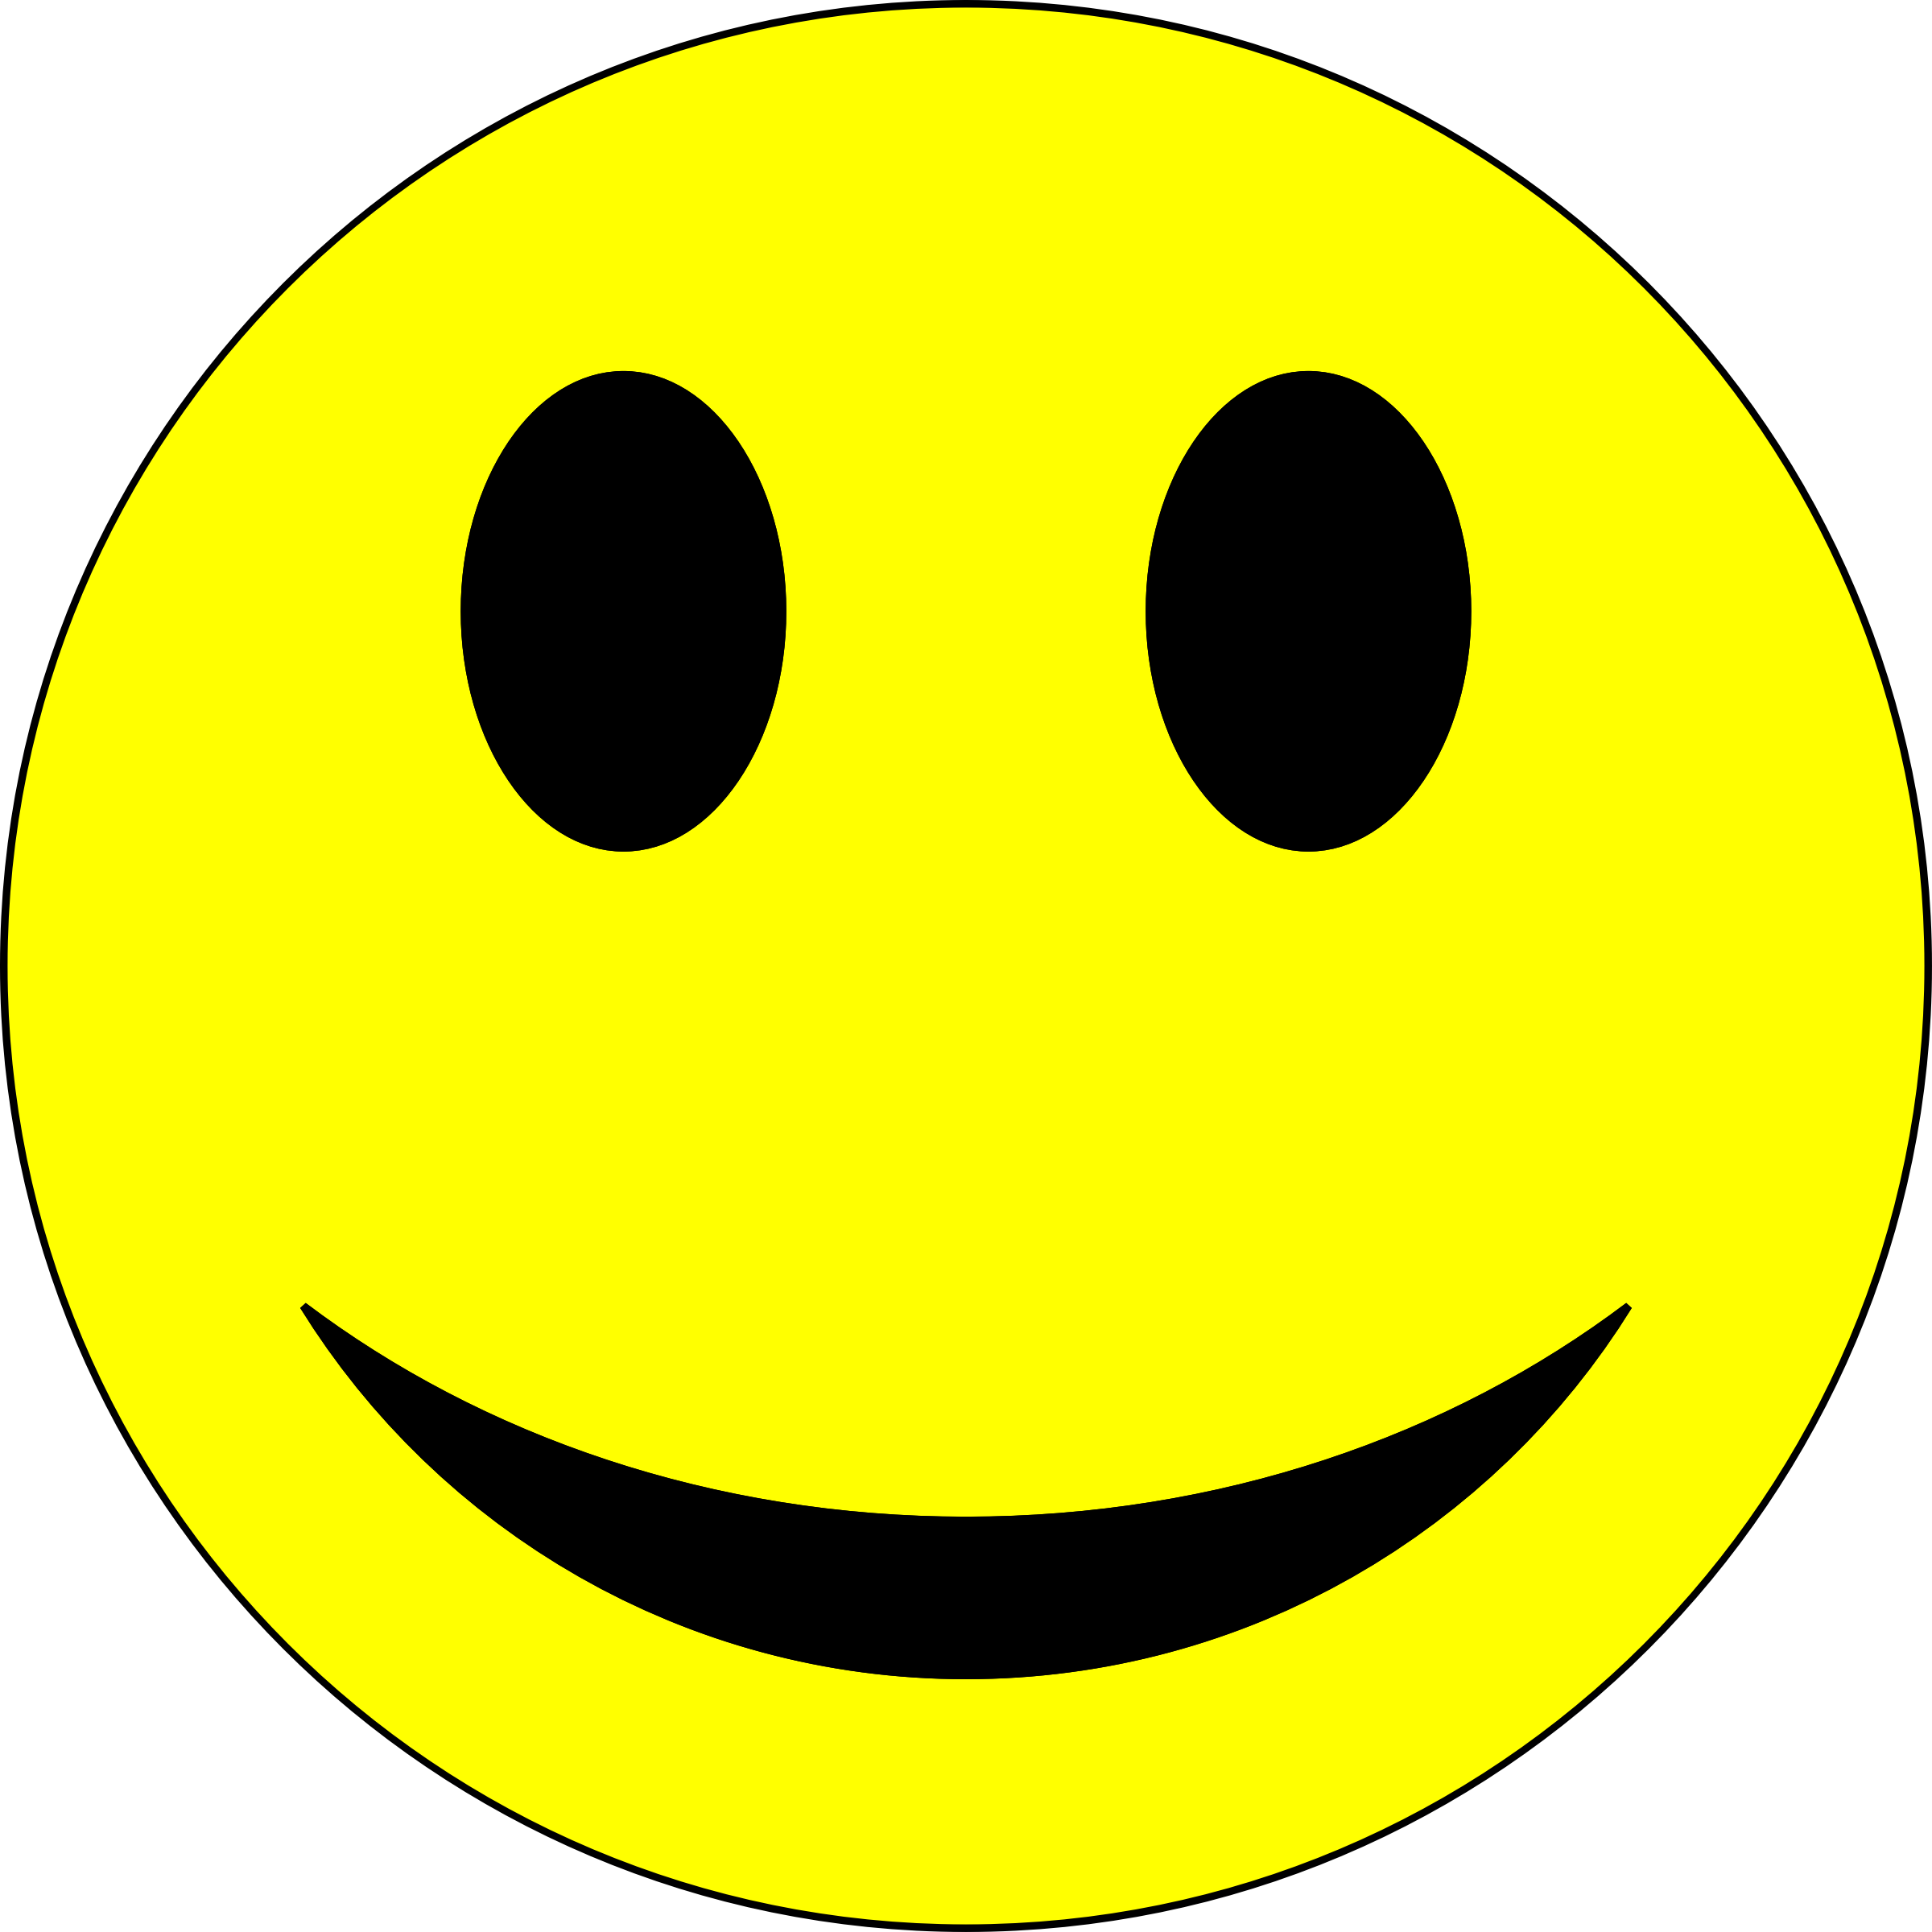 Clipart - Smiley - Yellow and Black